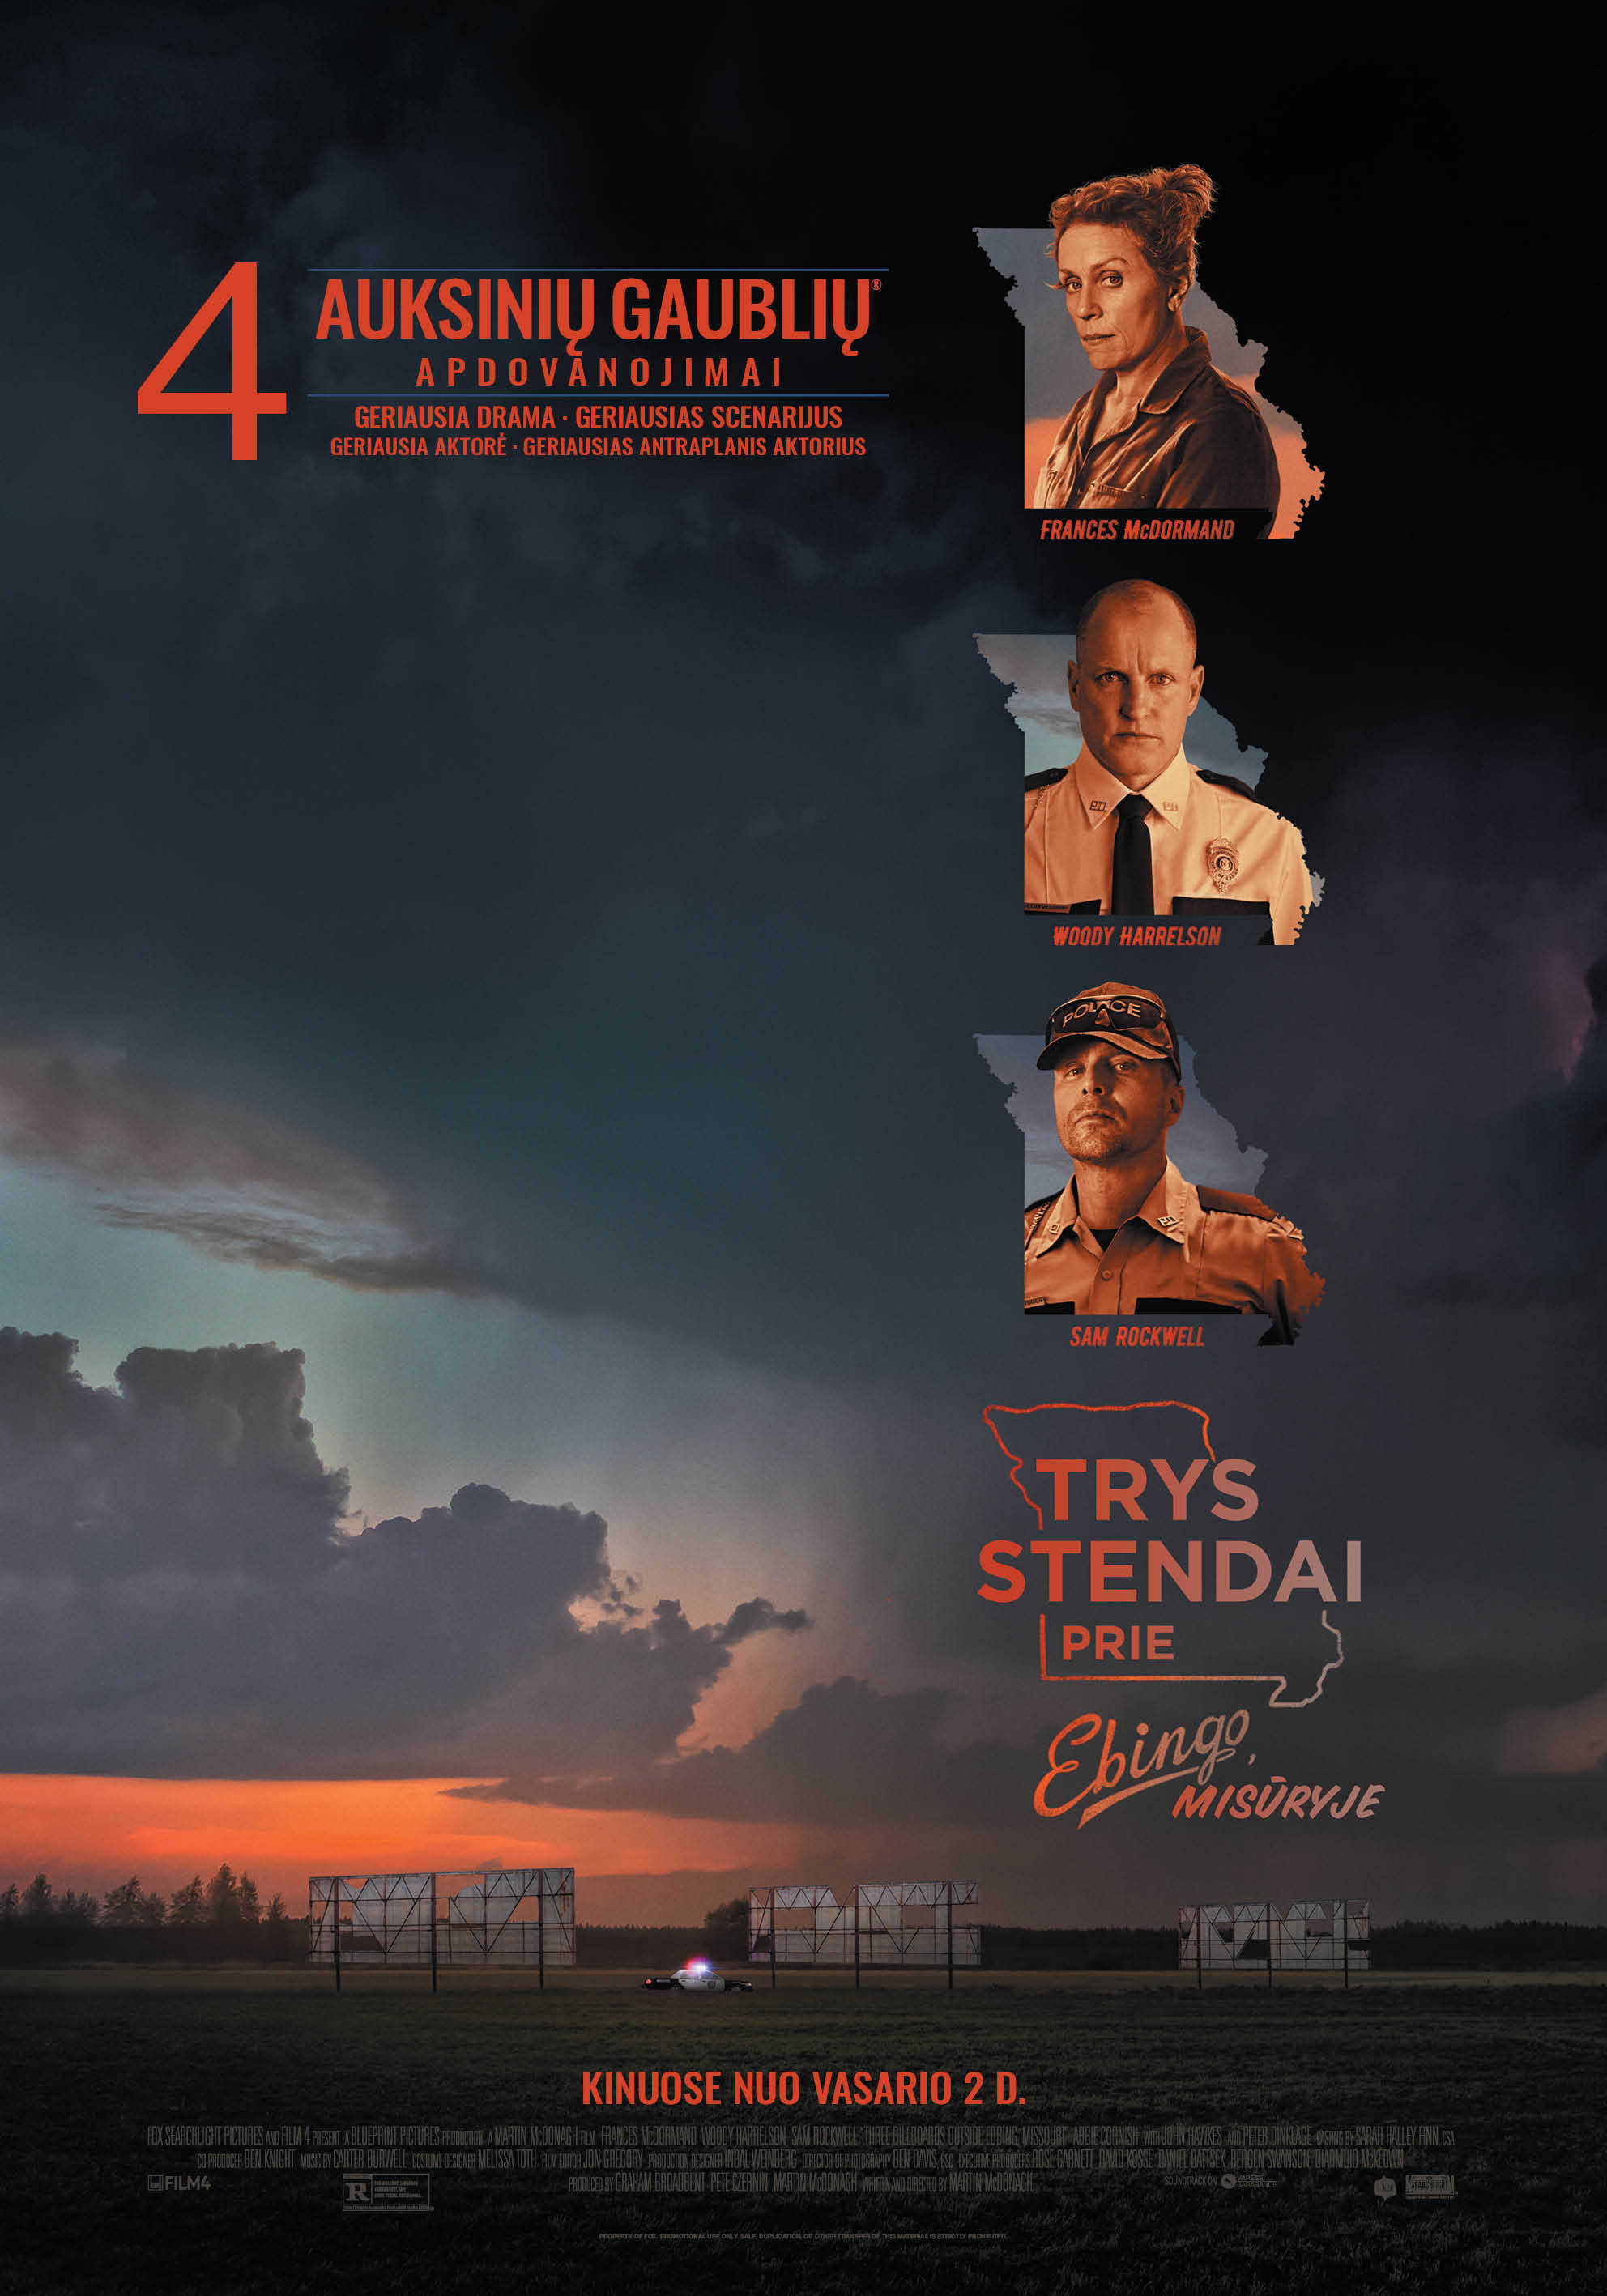 Trys stendai prie ebingo, misūryje (Three Billboards Outside Ebbing, Missouri)